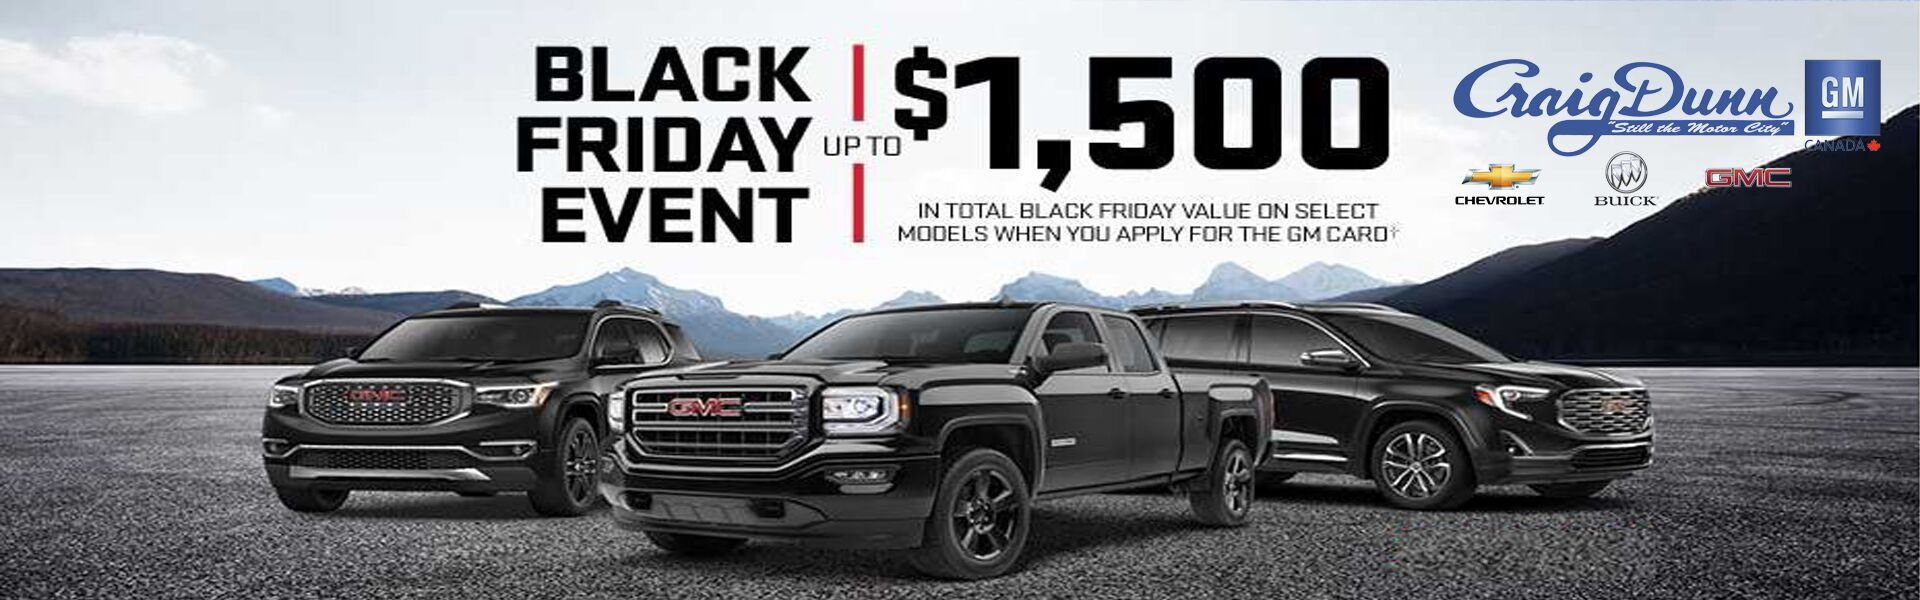 gmc black friday winnipeg, mb